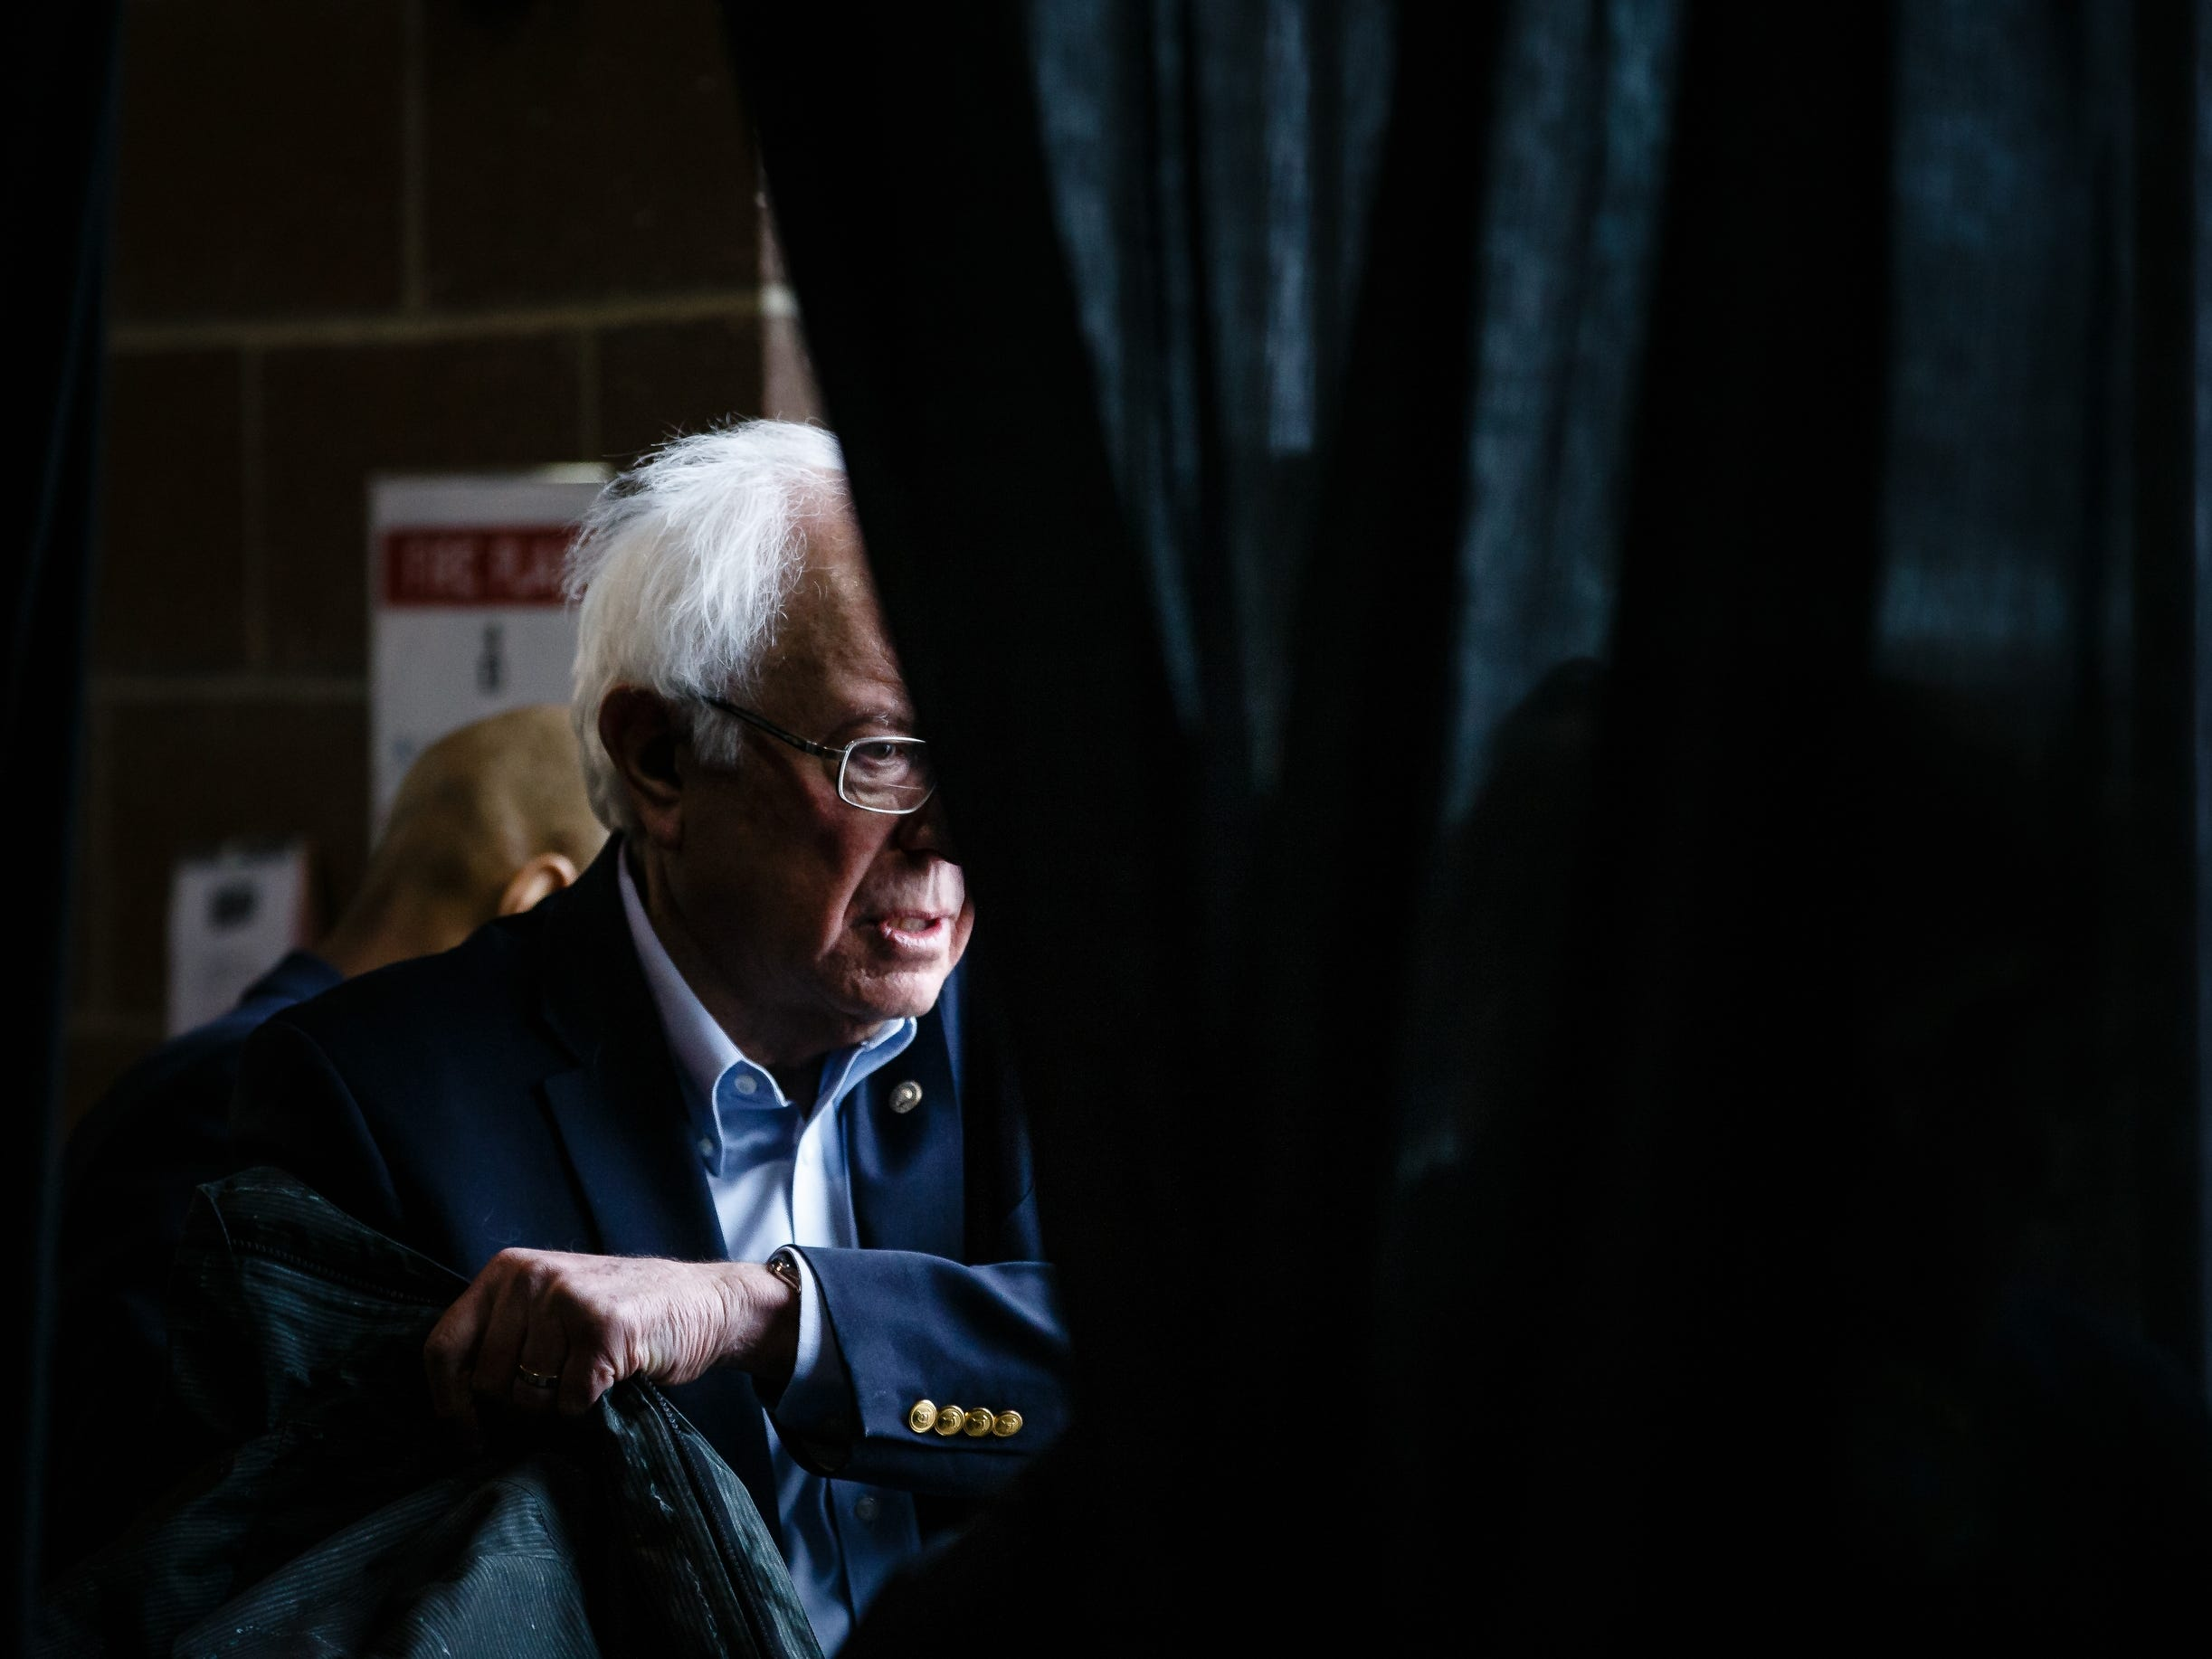 Democratic presidential candidate Bernie Sanders leaves a rally at the Iowa State Fairgrounds on Saturday, March 9, 2019 in Des Moines.